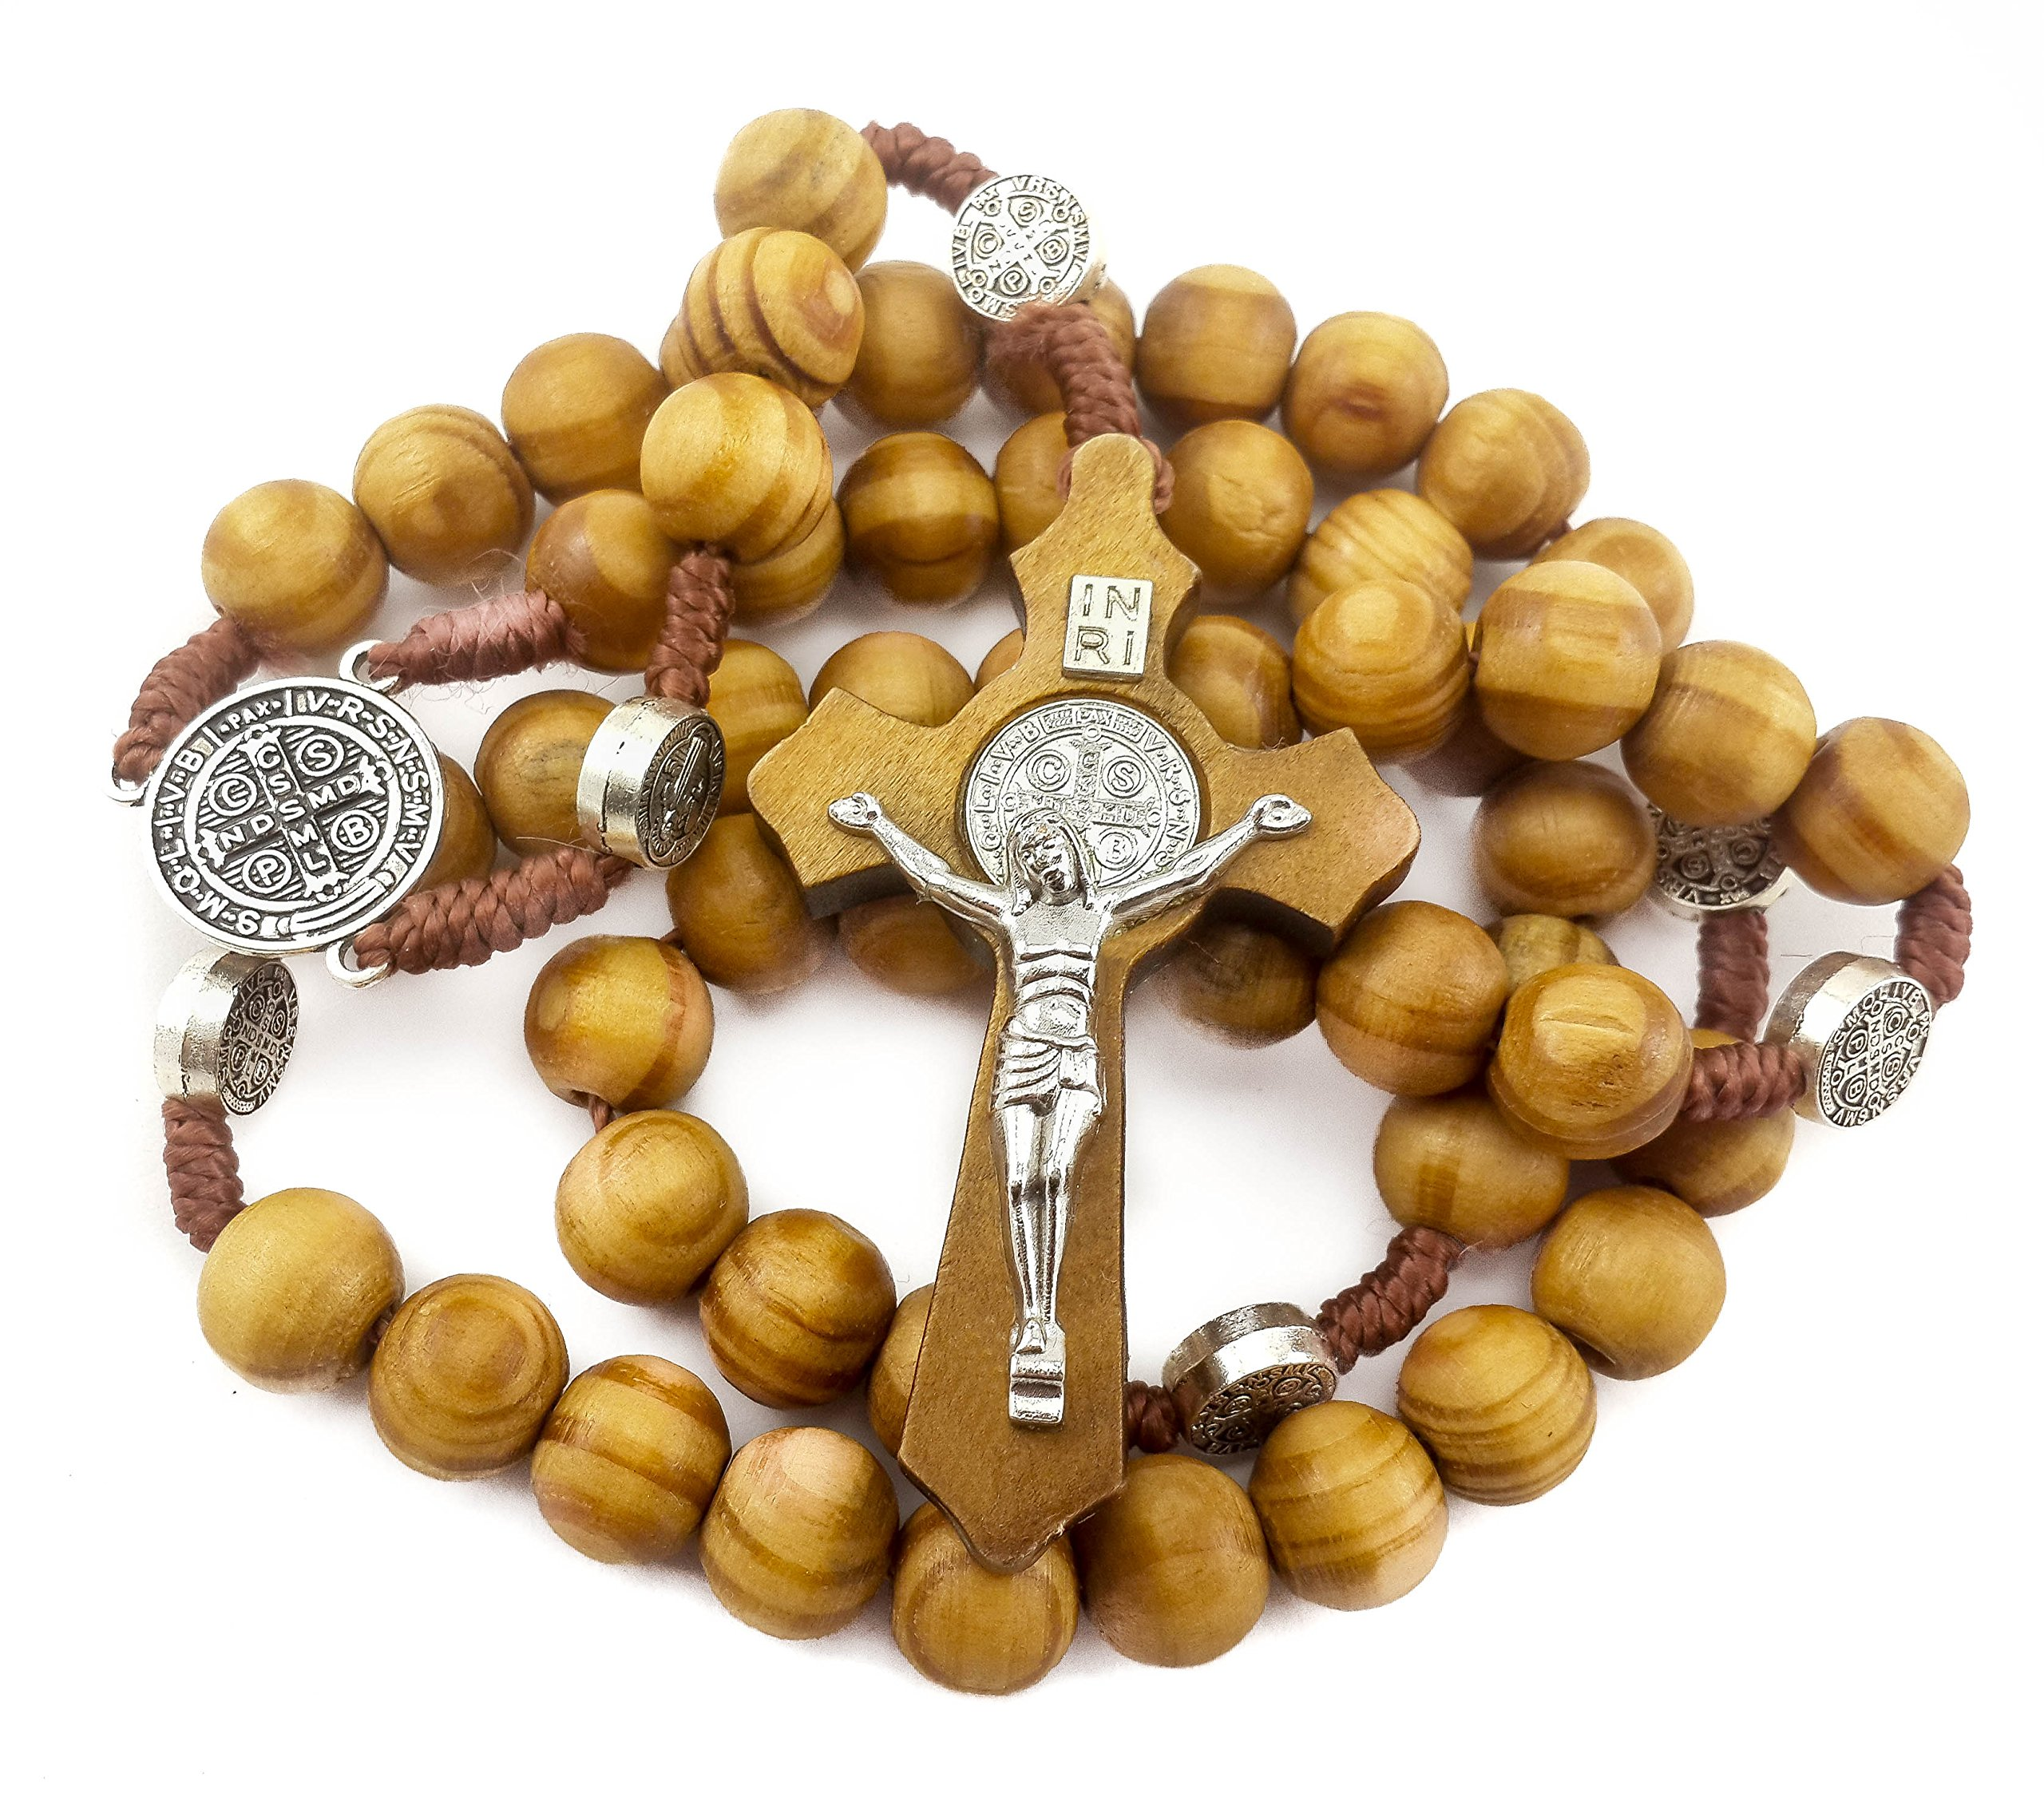 Saint Benedict Evil Protection Medal with Cross Wood Beads Rosary Necklace Nazareth Store by Nazareth Store